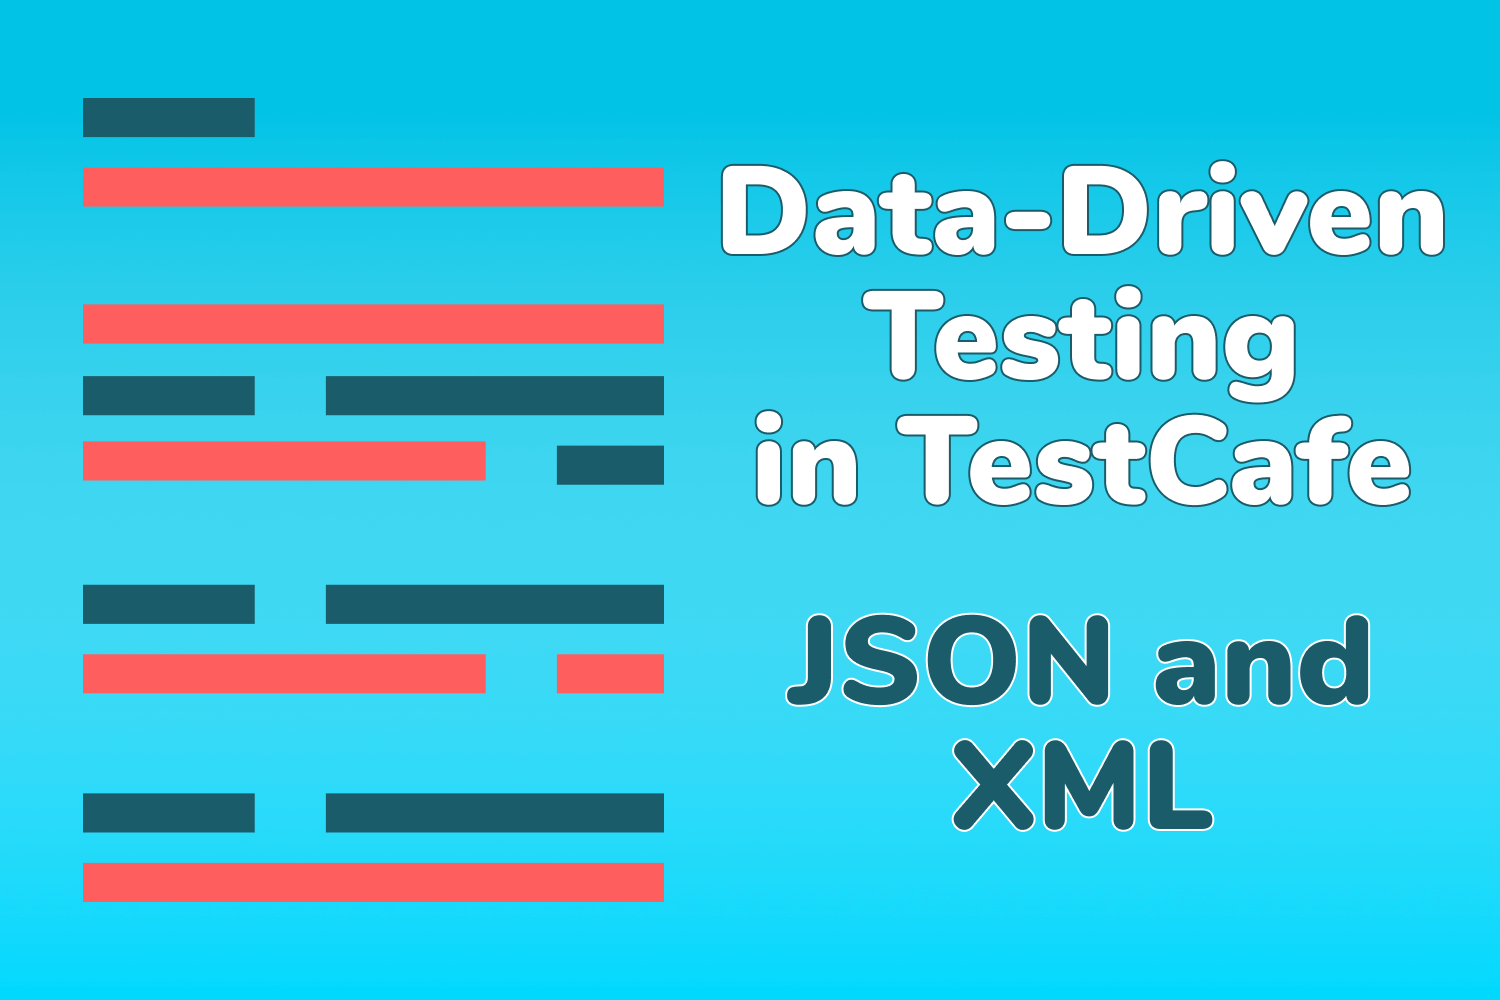 Data-Driven Testing in TestCafe (Part 1) - JSON and XML